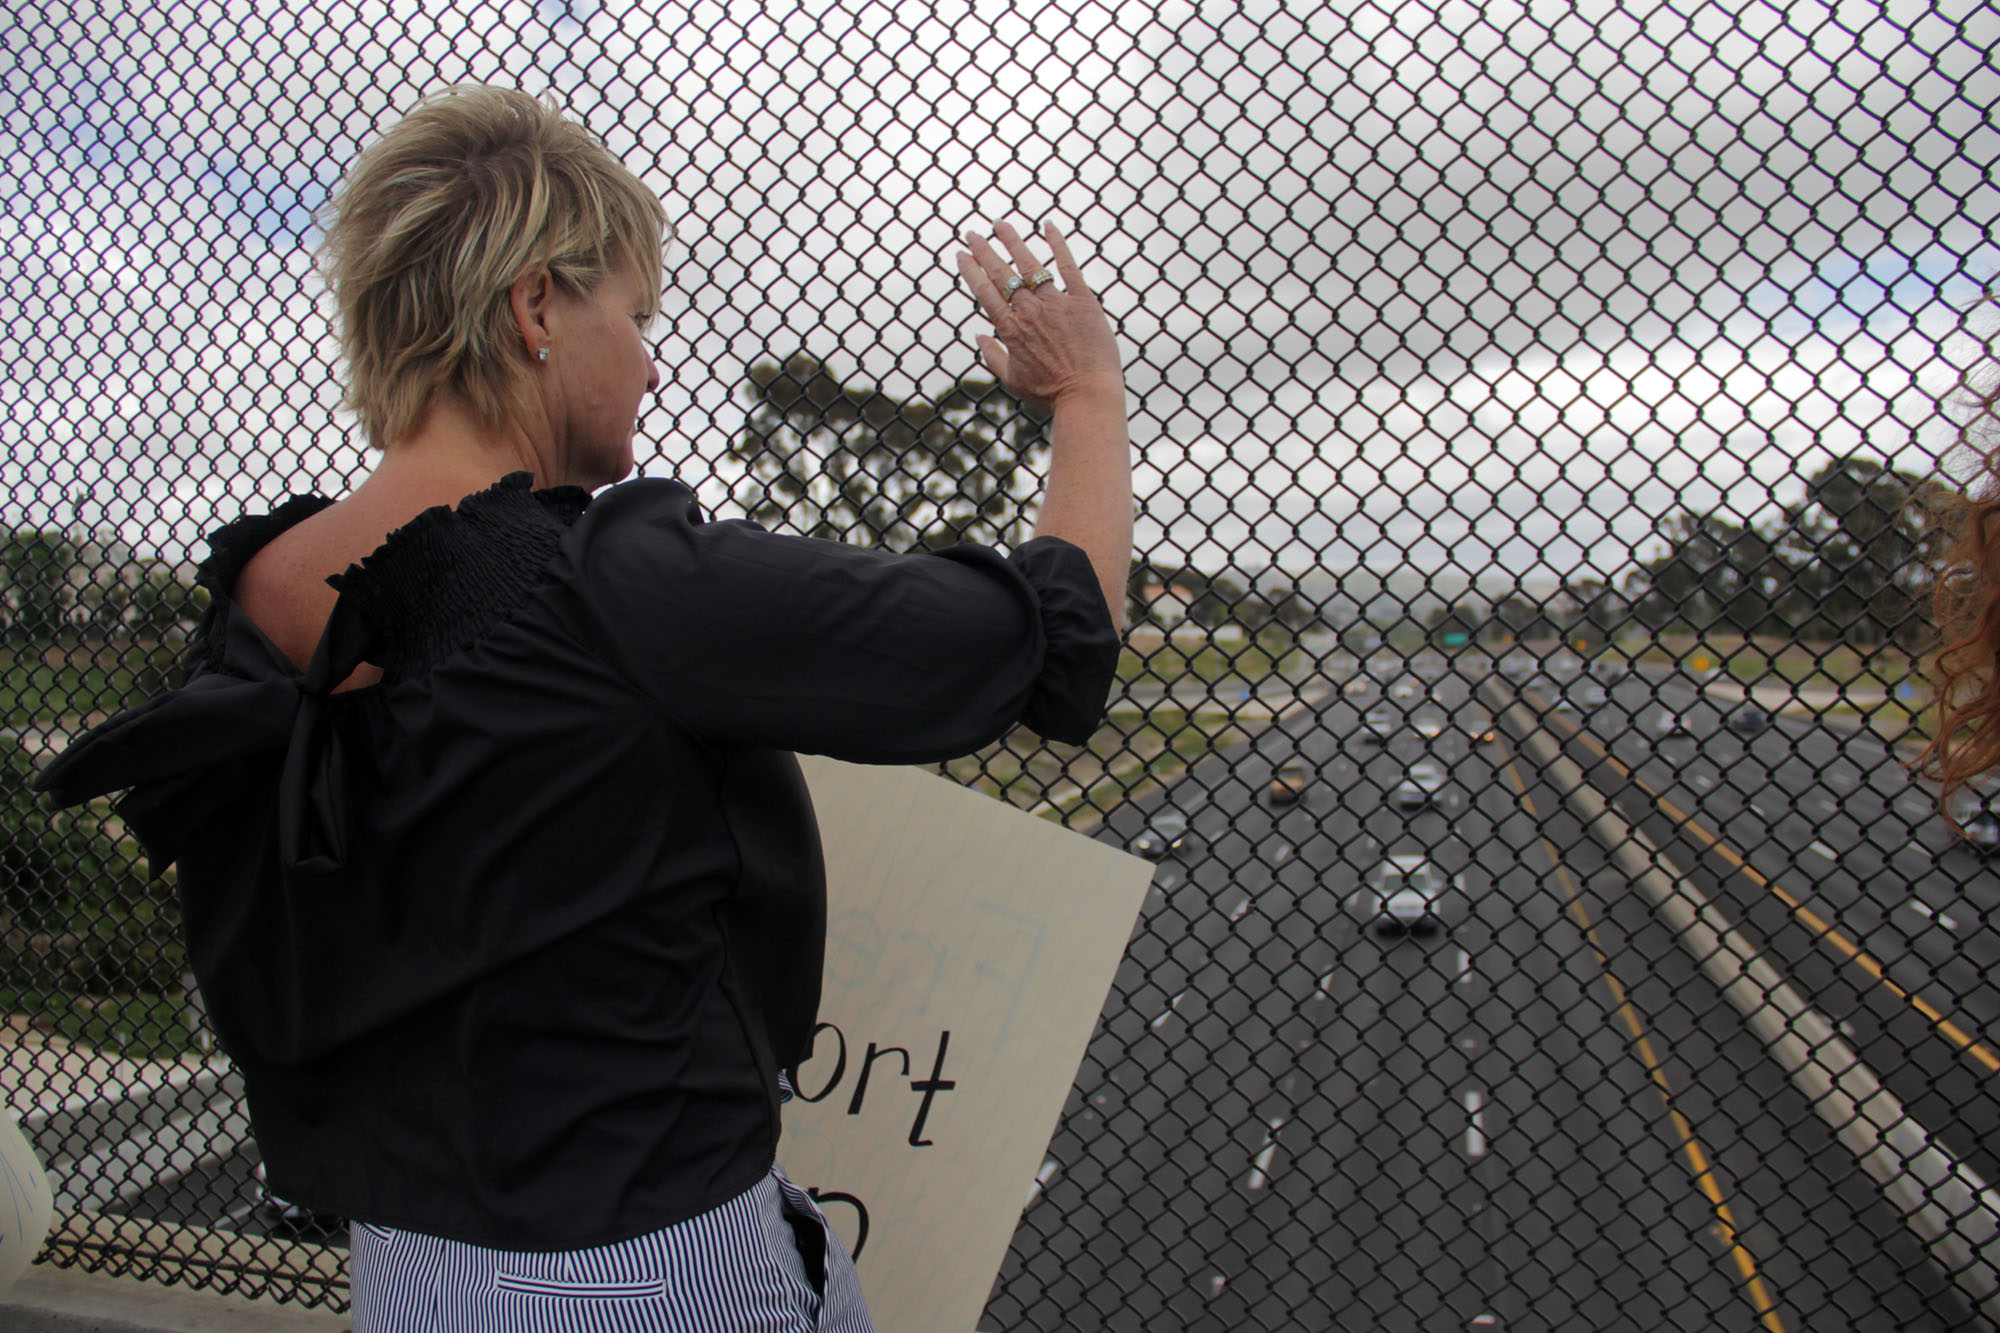 """Traci Arth-Streets, a San Clemente resident, holds up a sign reading """"Freedom of Choice"""" on the Camino De Estrella overpass during a Tuesday, May 21 protest against new abortion bans that several states have recently passed. Photo: Shawn Raymundo"""